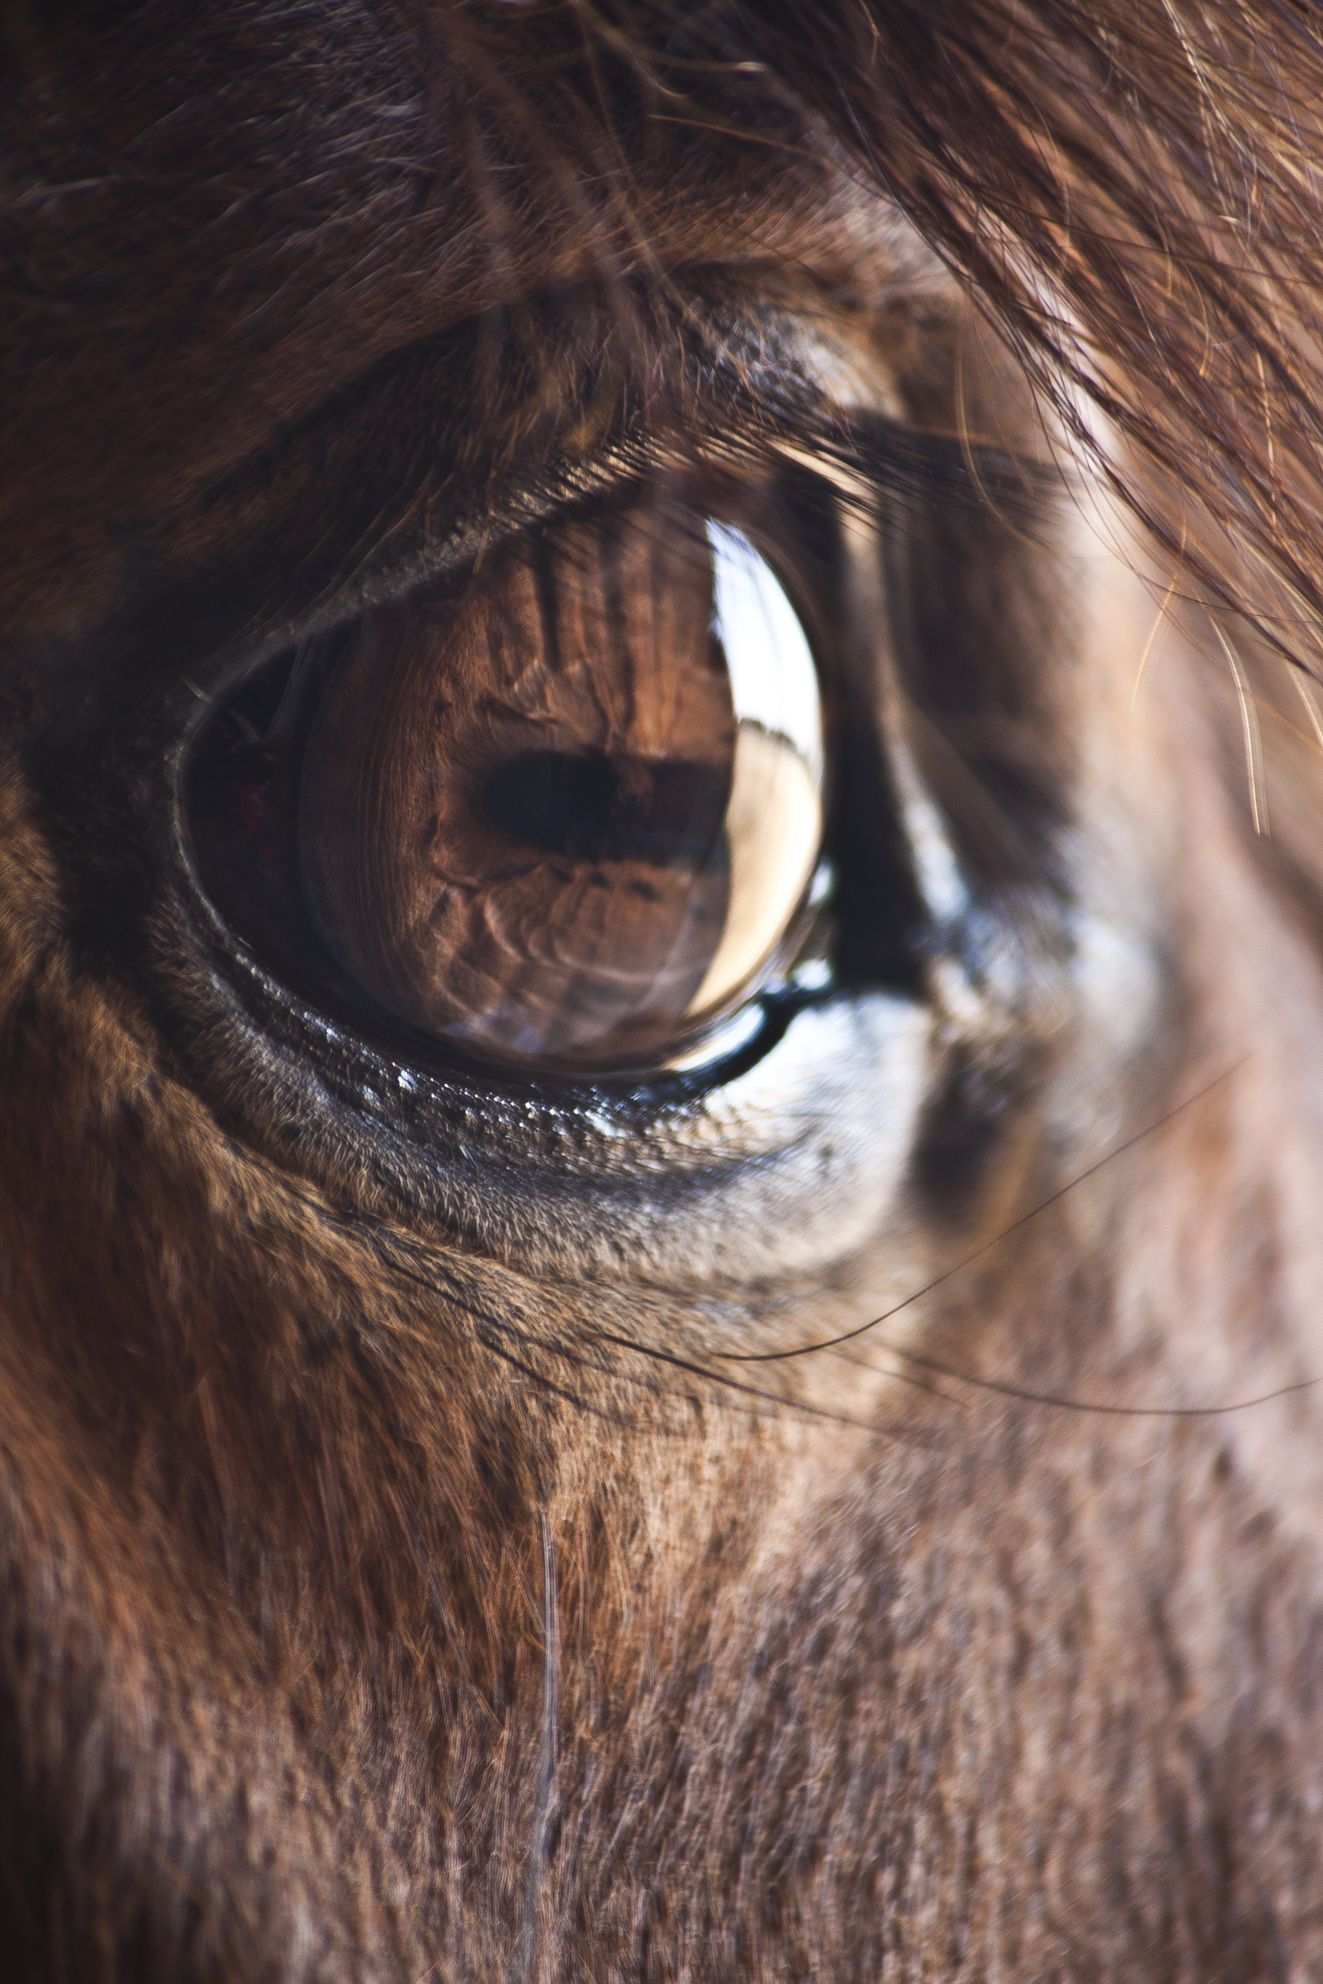 the eye of the #horse | equine | Pinterest | Horse, Eye and Animal